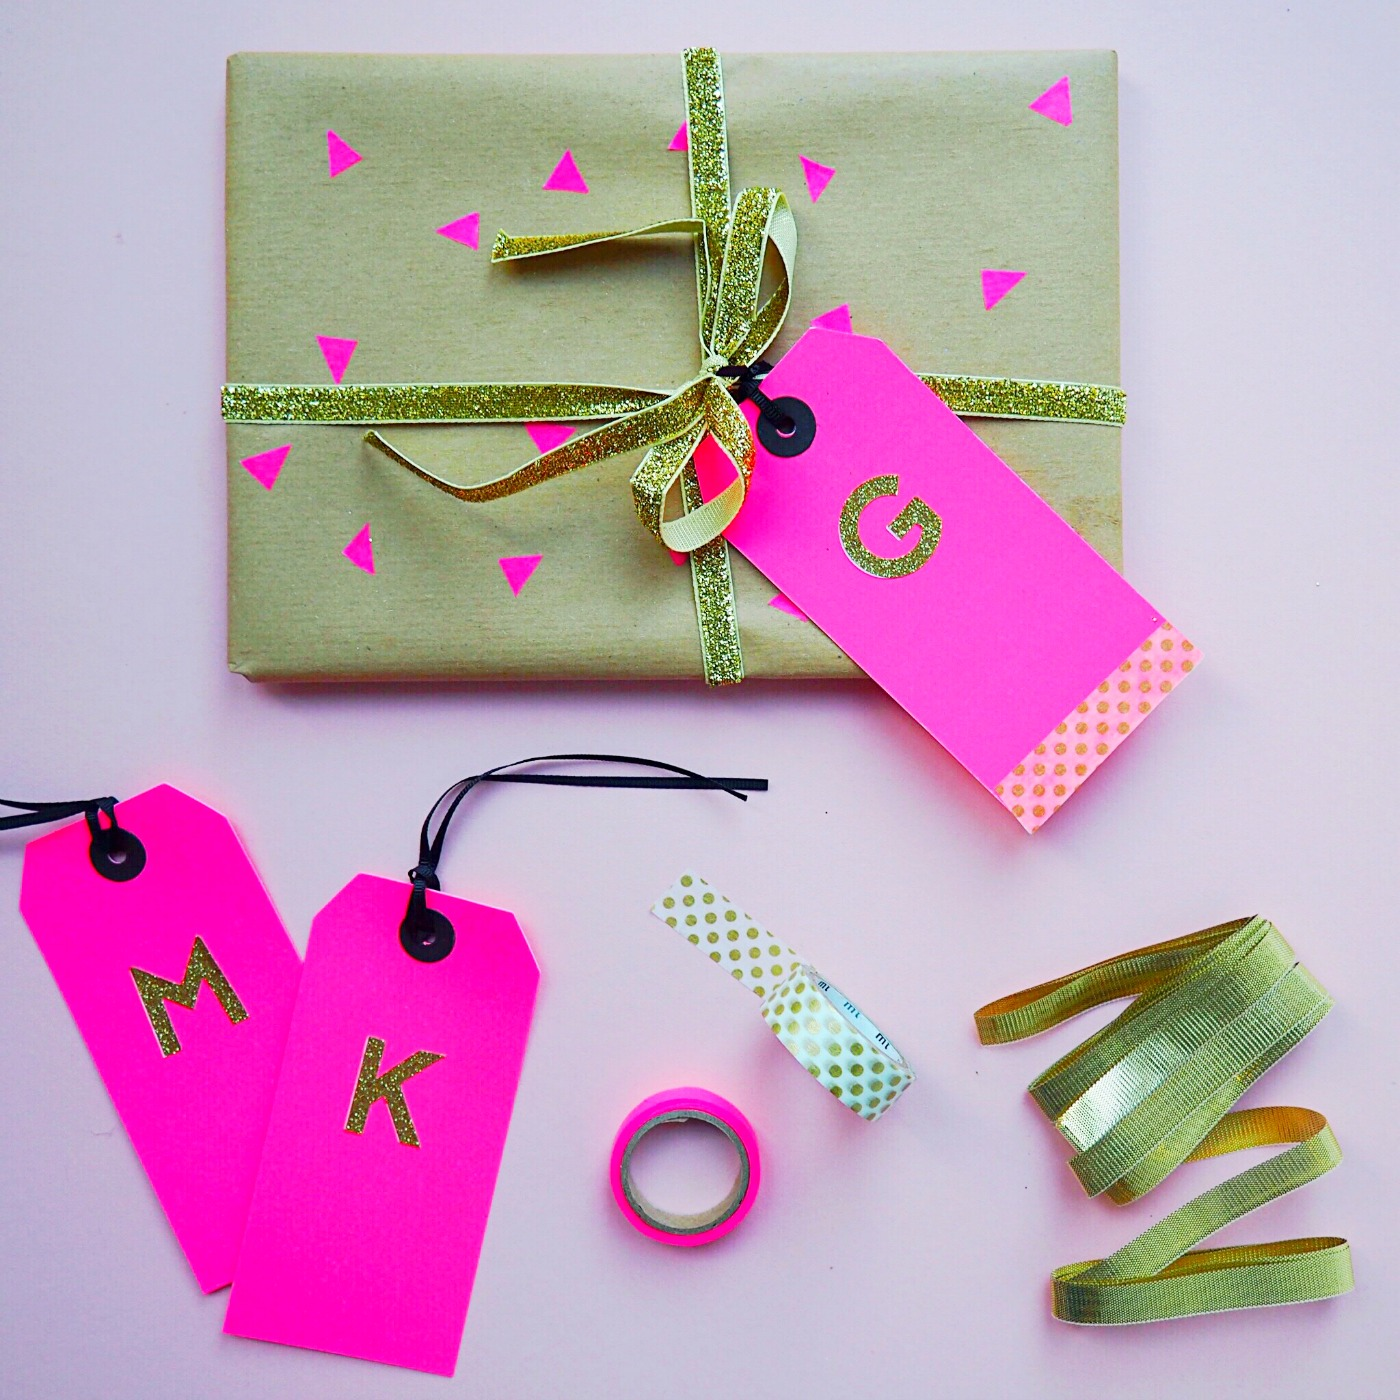 Make your own DIY personalised gift wrap